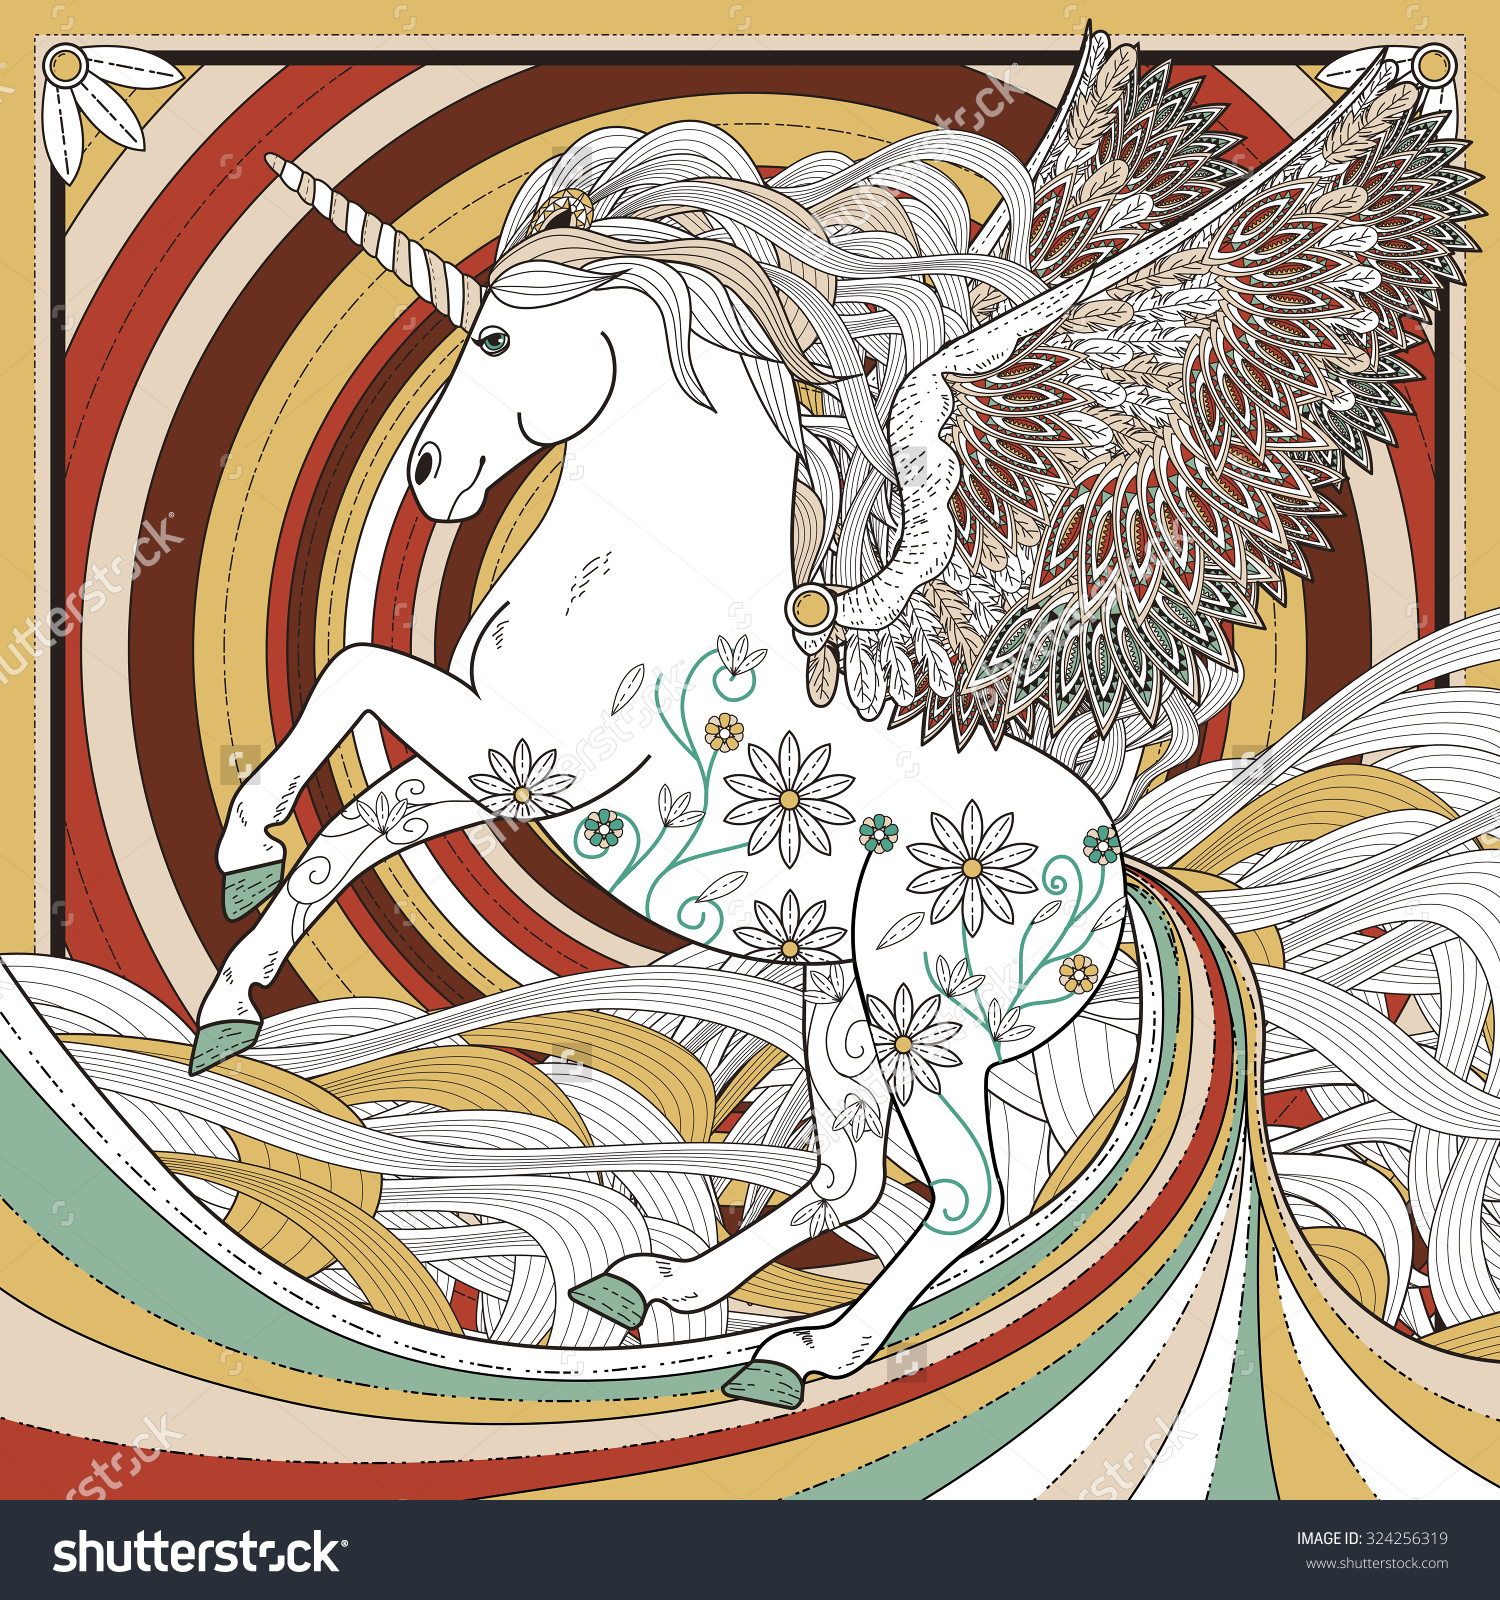 fantastical styles coloring pages - photo#33